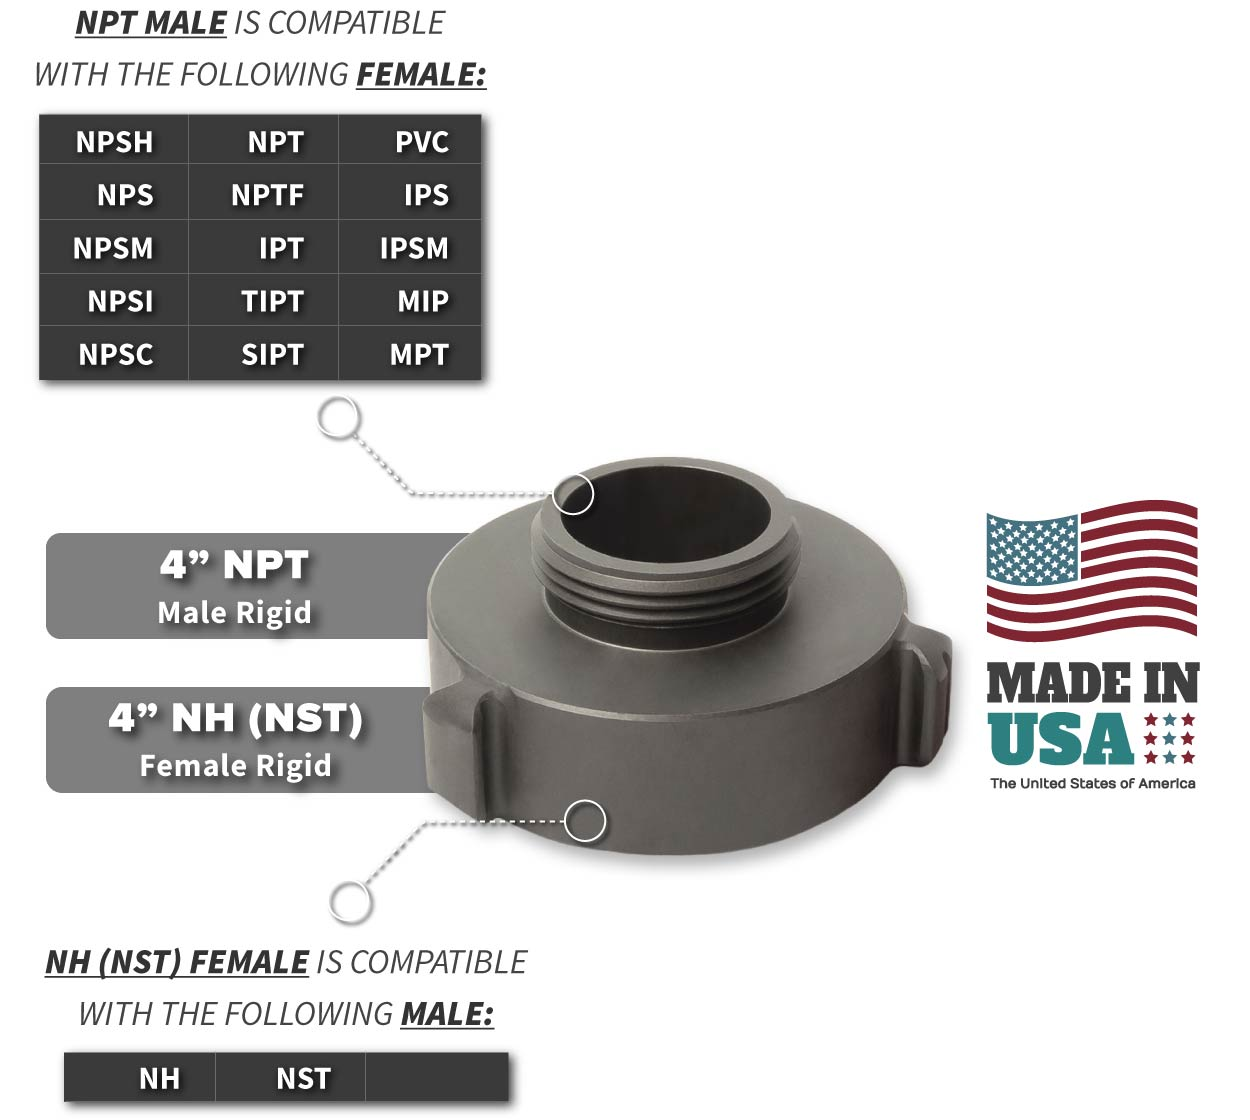 4 Inch NH-NST Female x 4 Inch NPT Male Compatibility Thread Chart